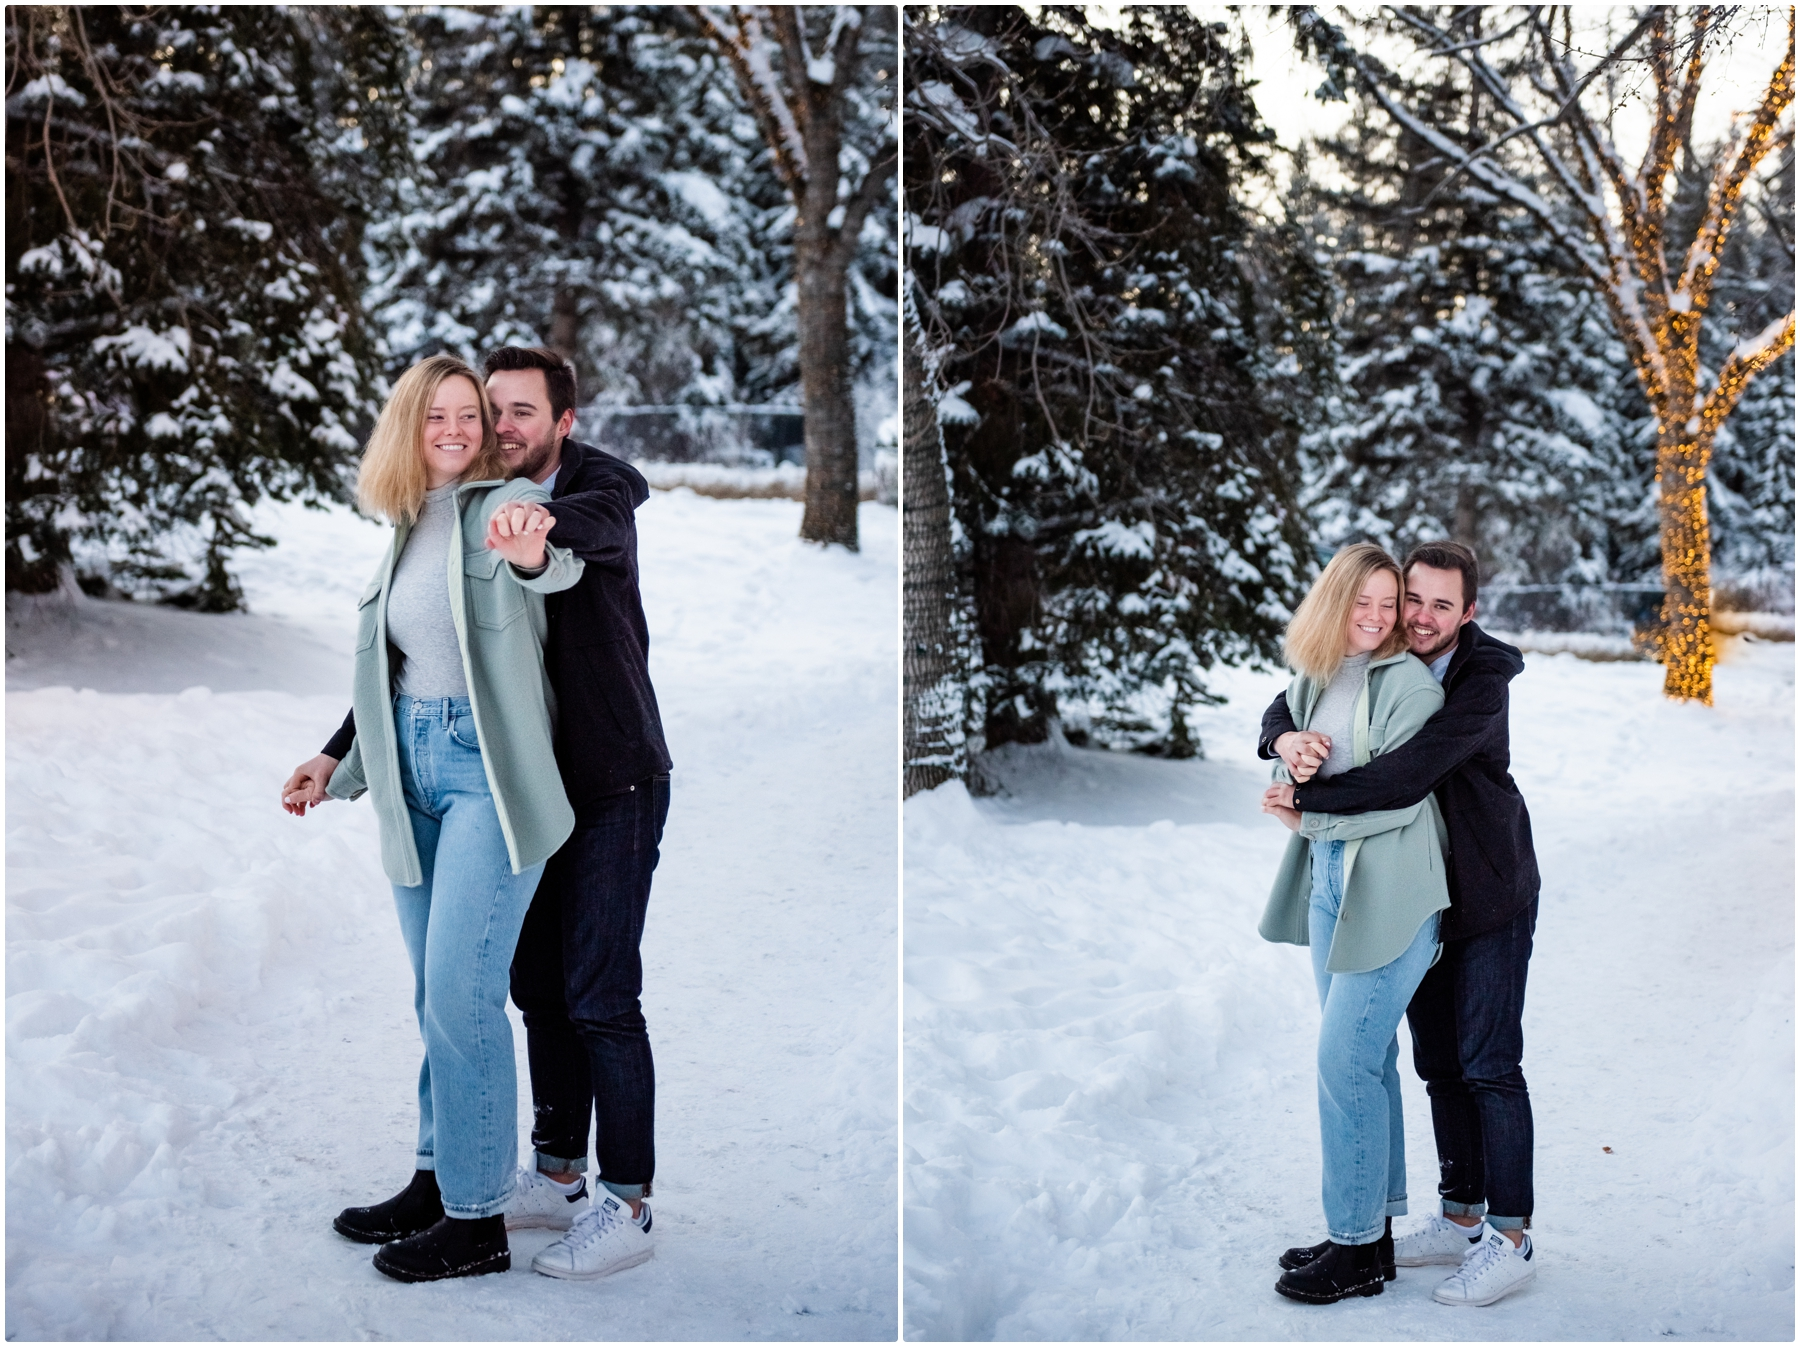 Calgary Bowness Park Winter Engagement Photography